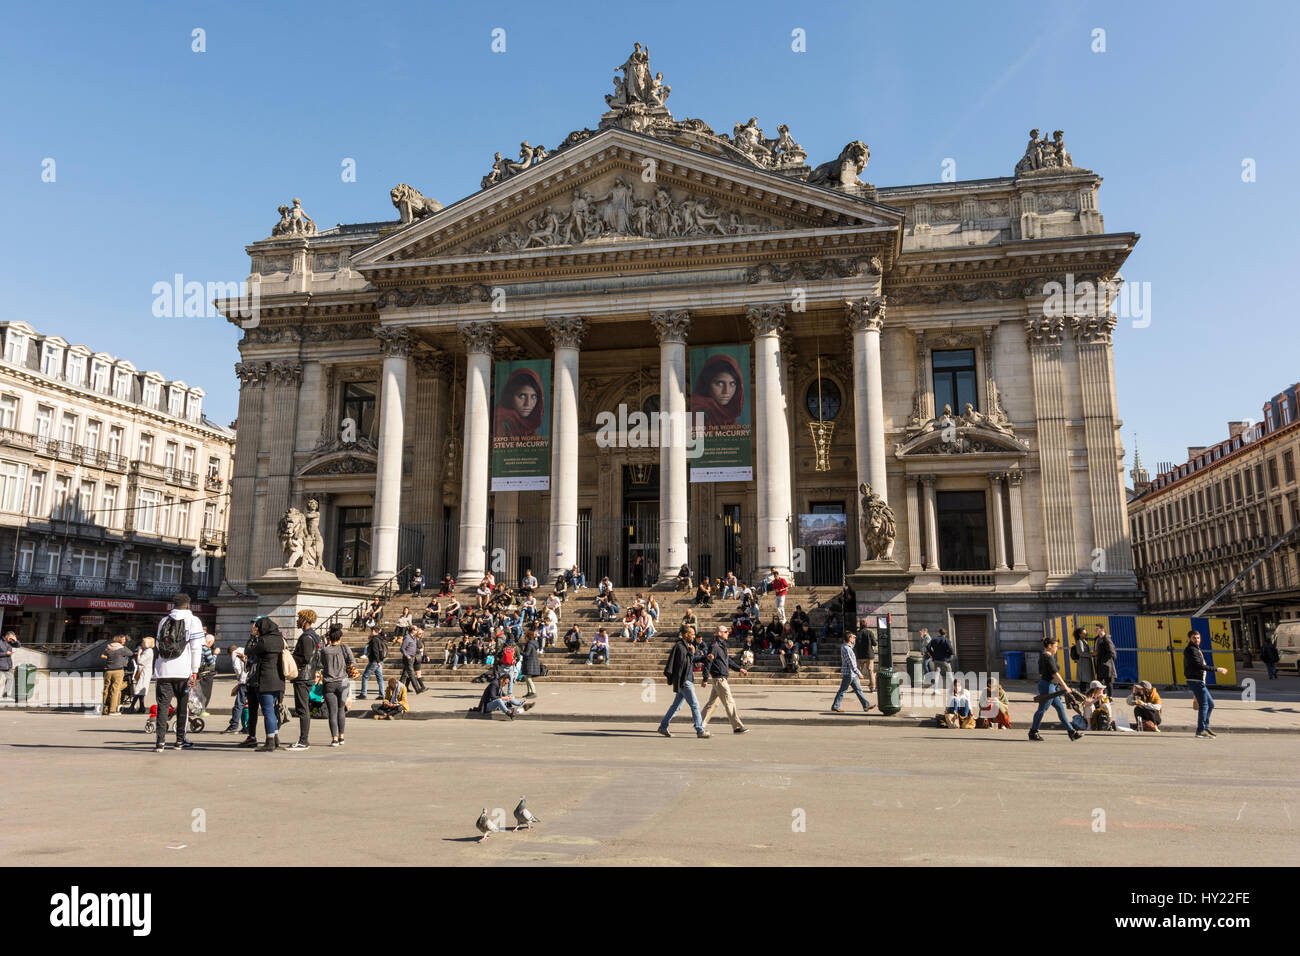 Le Bourse building in Brussels - Stock Image